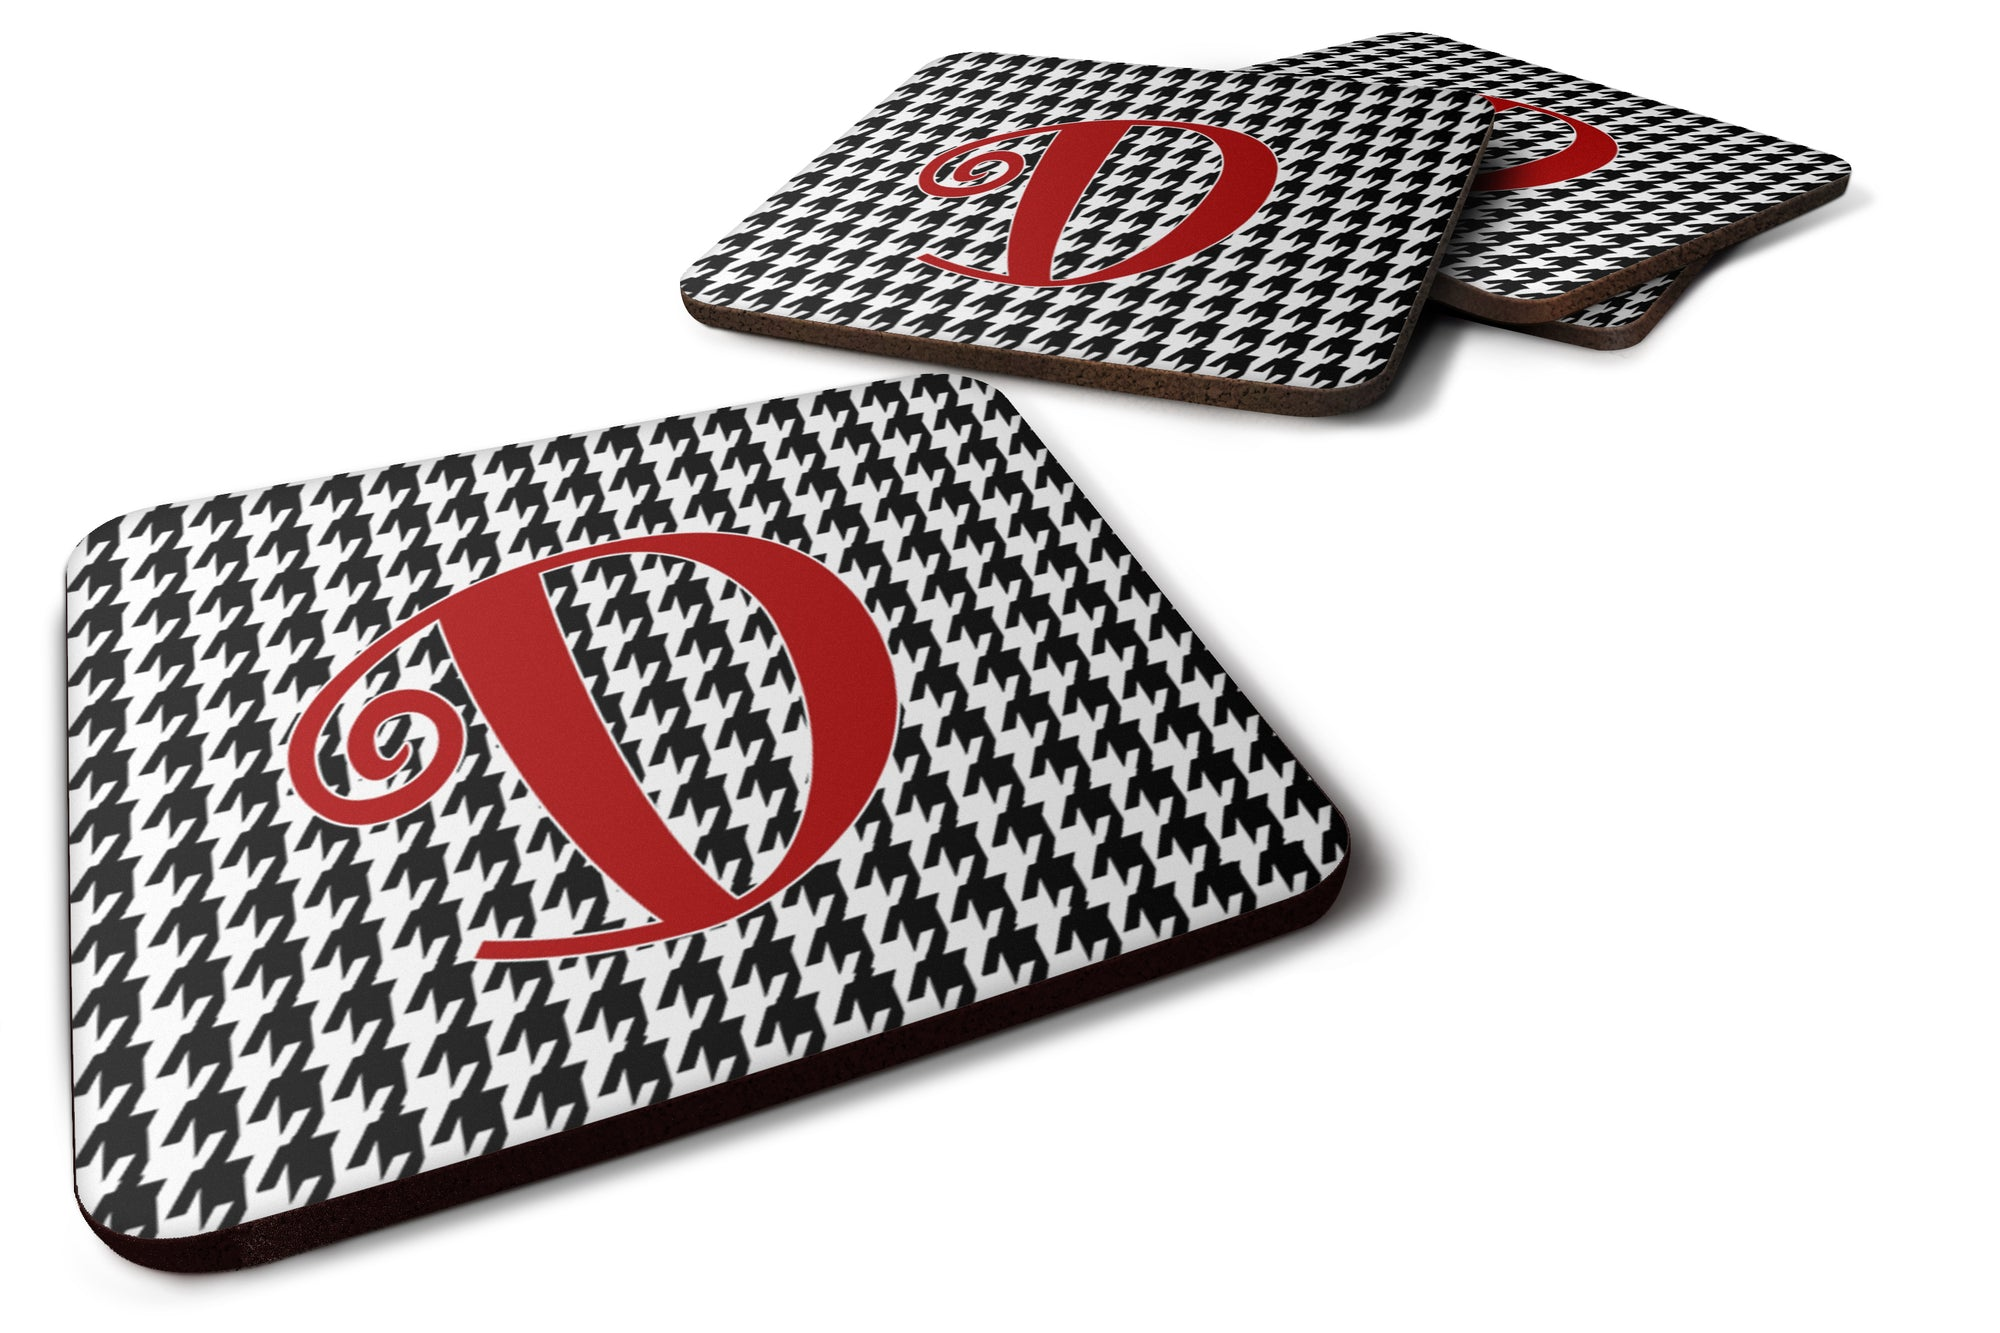 Set of 4 Monogram - Houndstooth Black Foam Coasters Initial Letter D by Caroline's Treasures